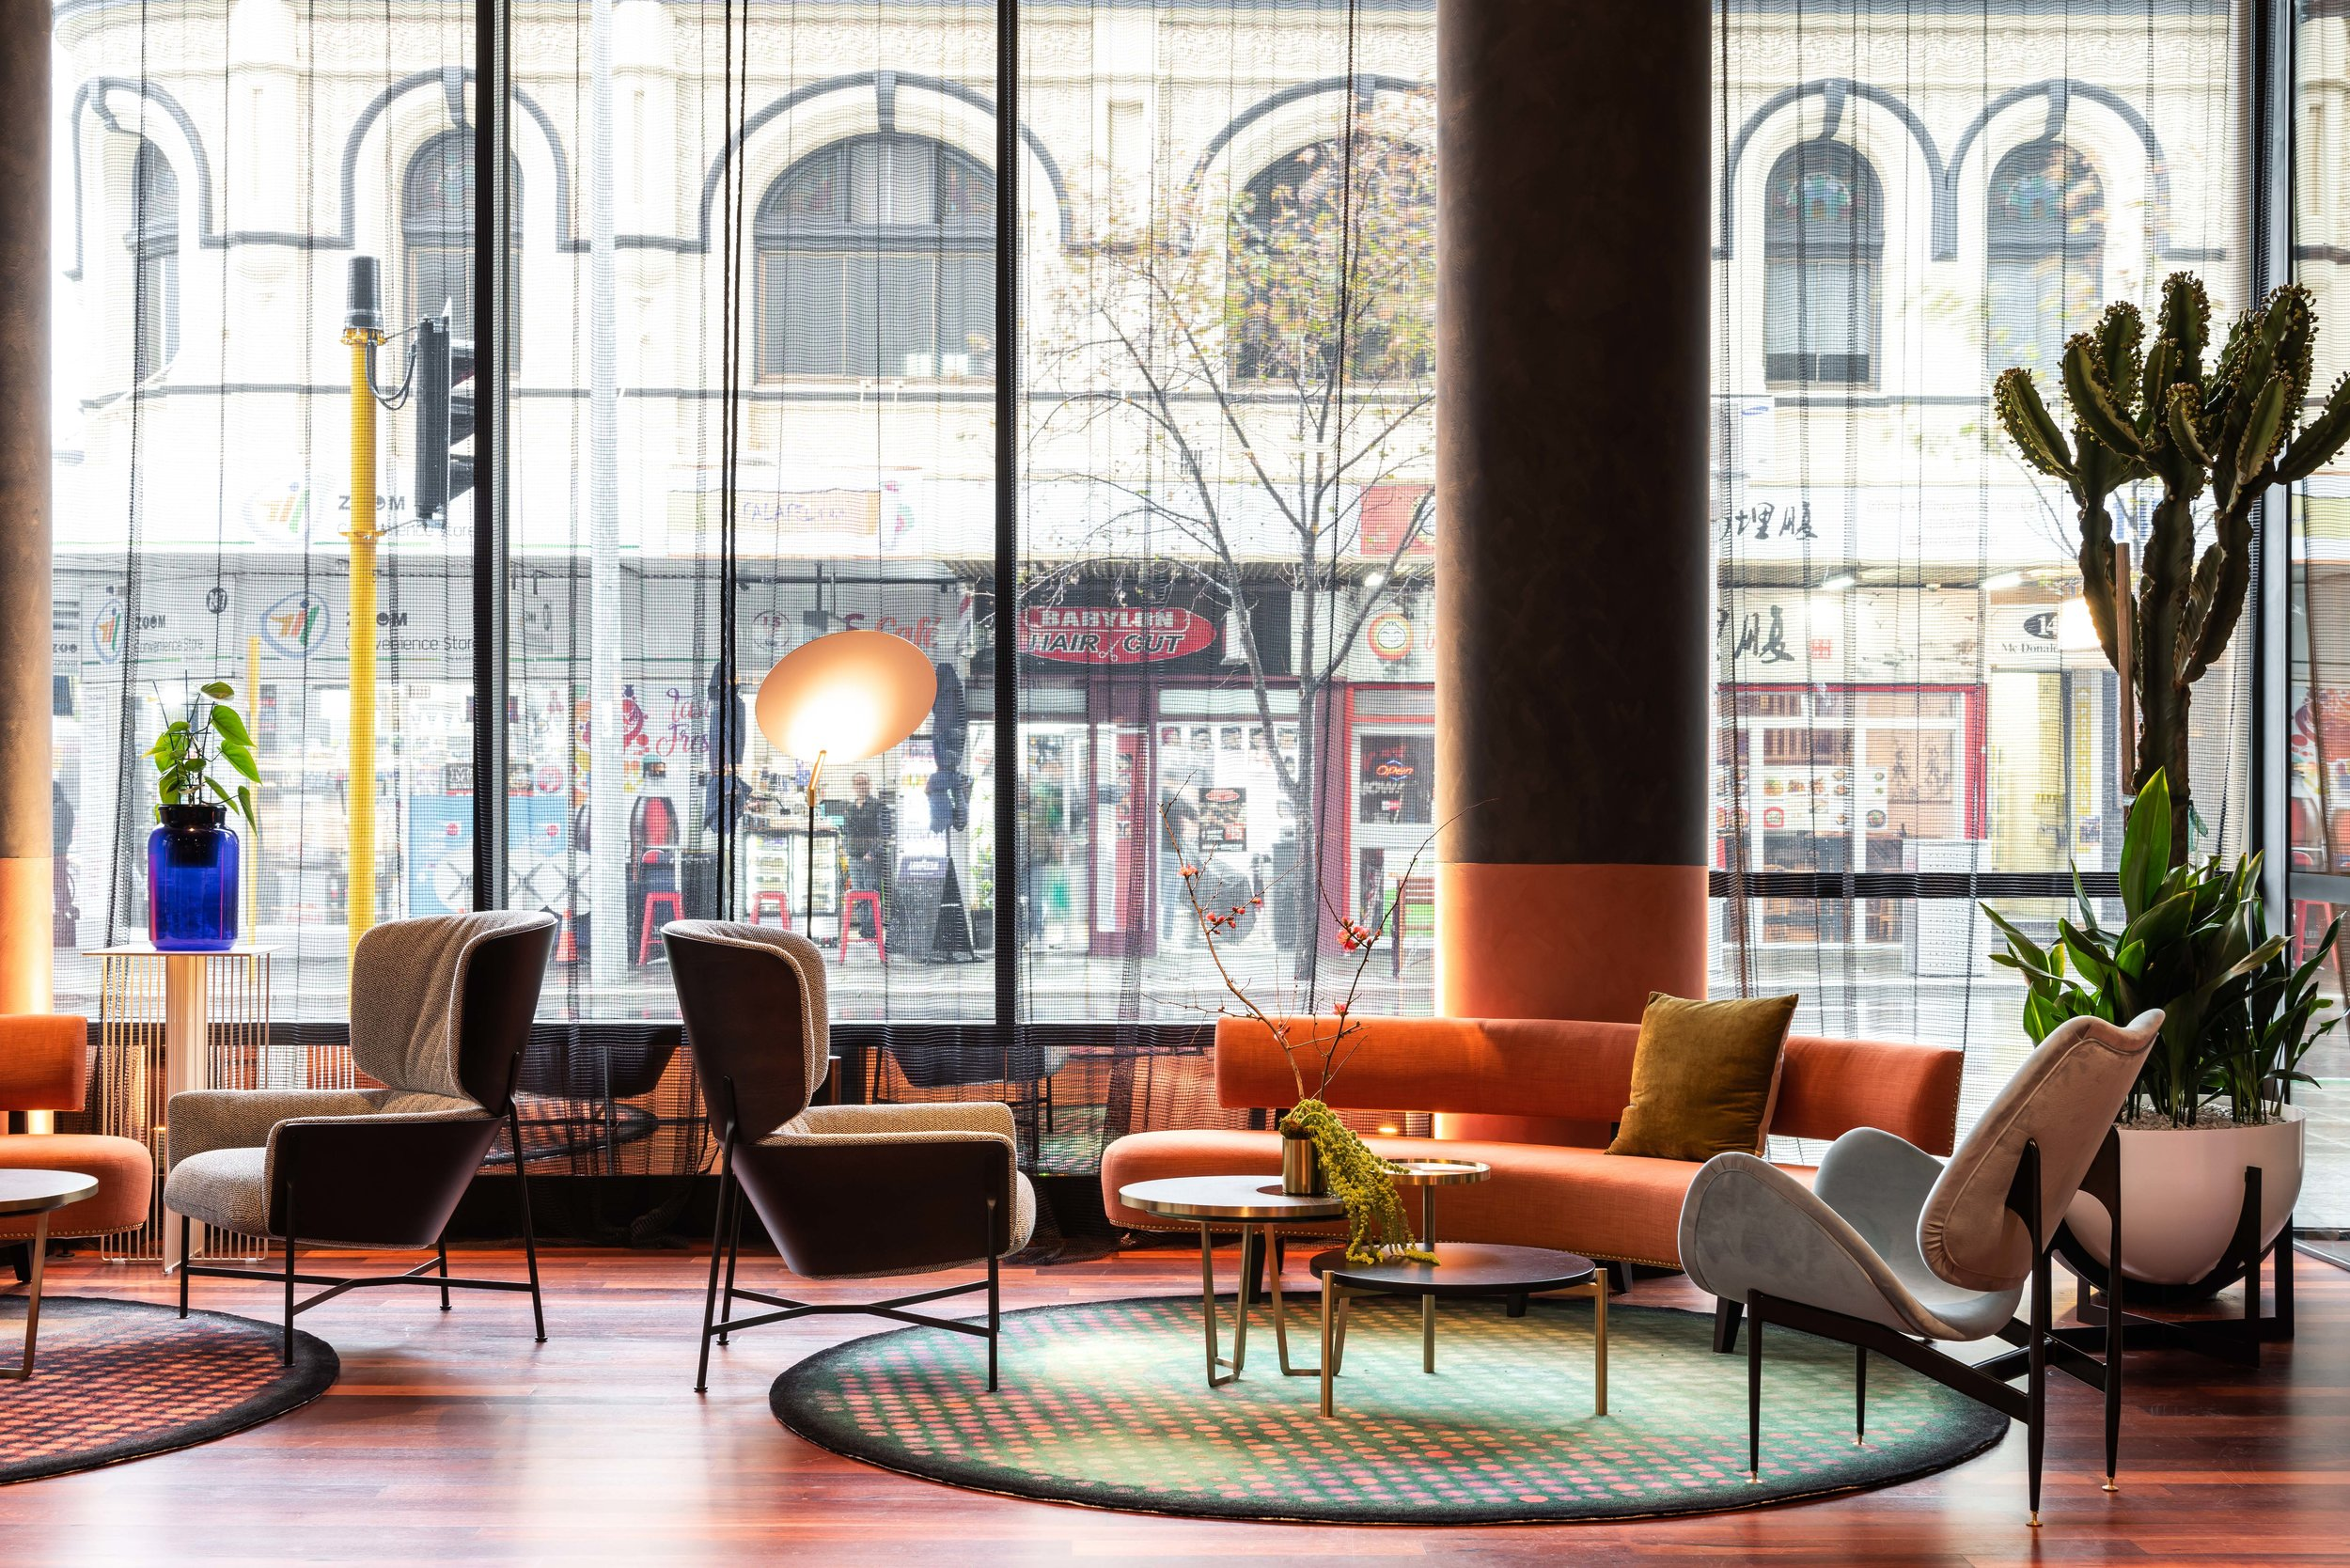 The lobby area of the recently opened QT Perth is a mix of bespoke furniture pieces, the newly released  Caristo Armchair s by SP01, and careful theatrics that expand the space through mirror and large artworks.